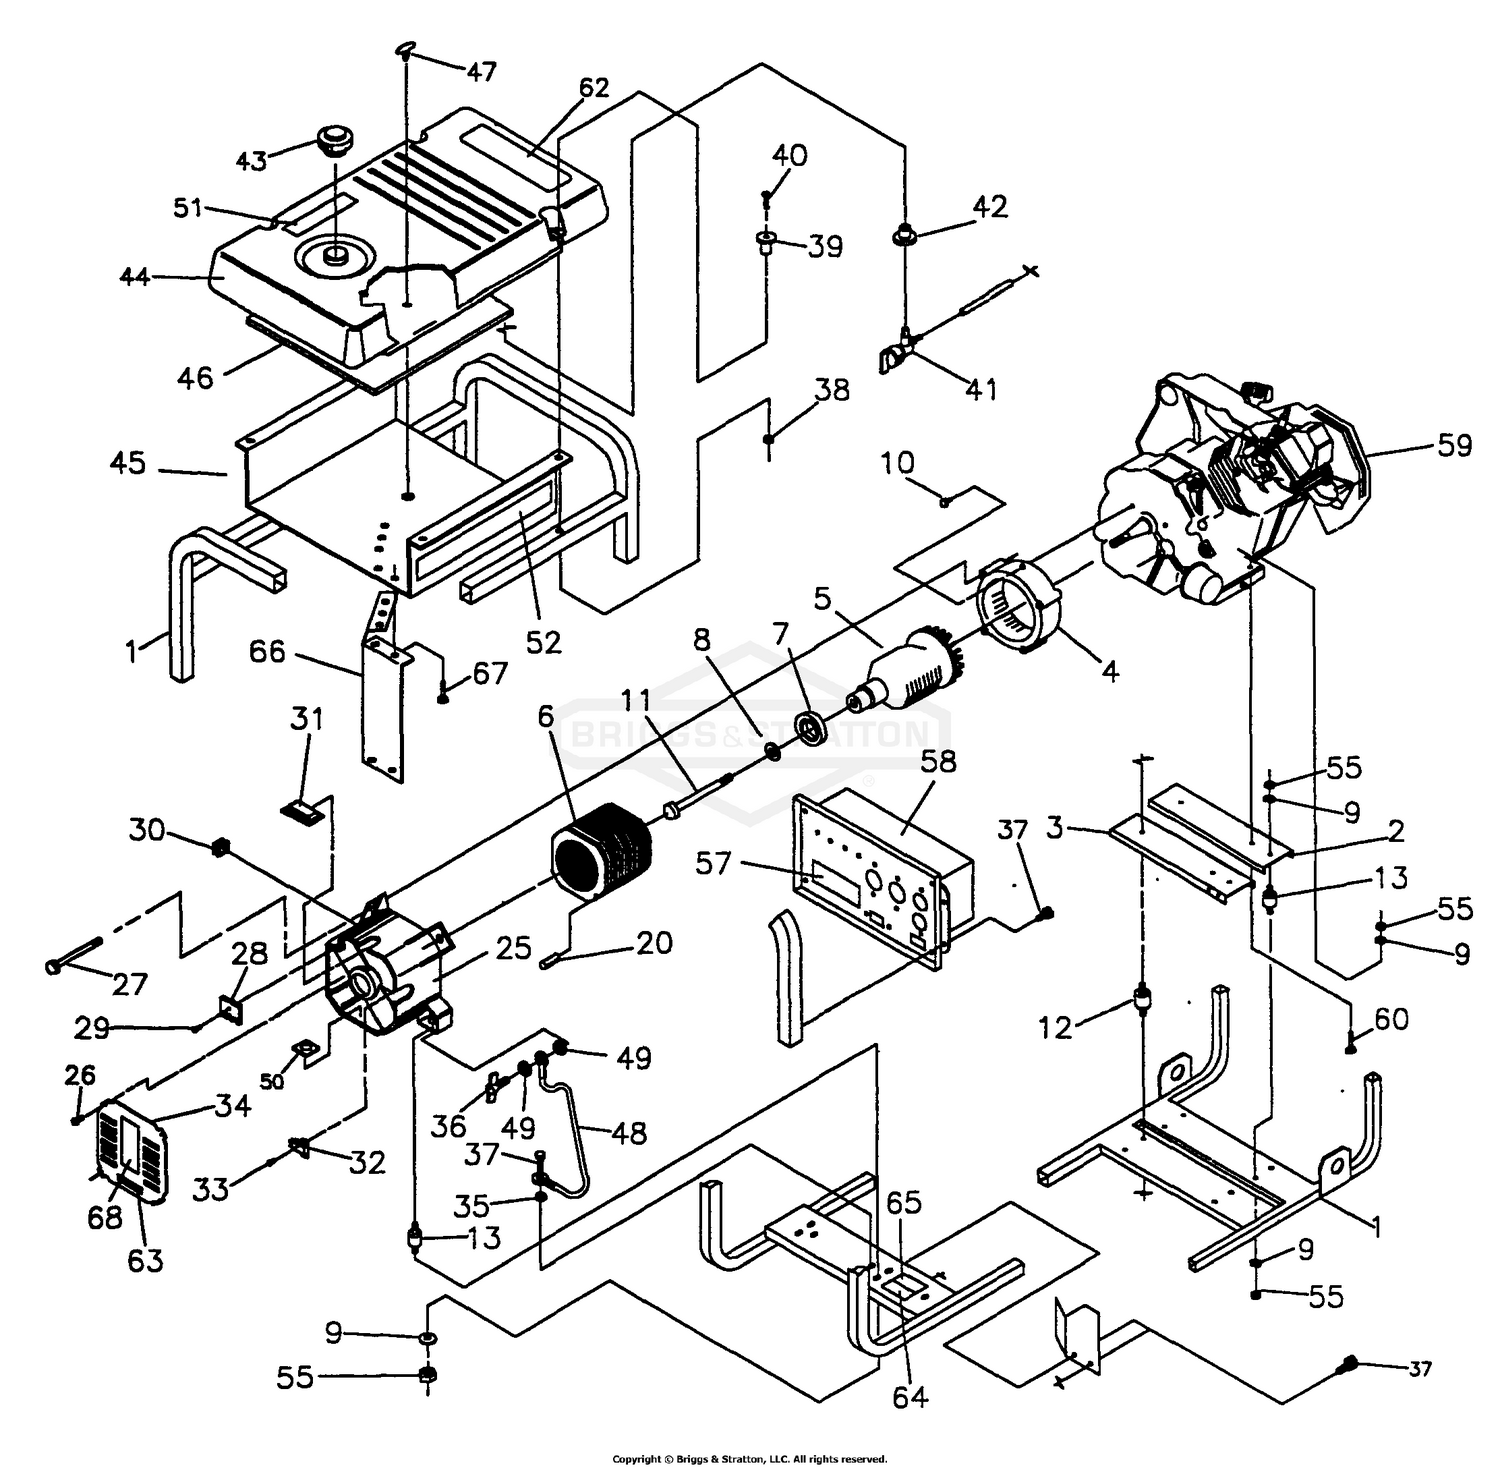 65795gs Rectifier Wiring Diagram Library 10 0 Briggs Stratton Motor Amp Power Products Del 26072017021729 9885 2 Generator